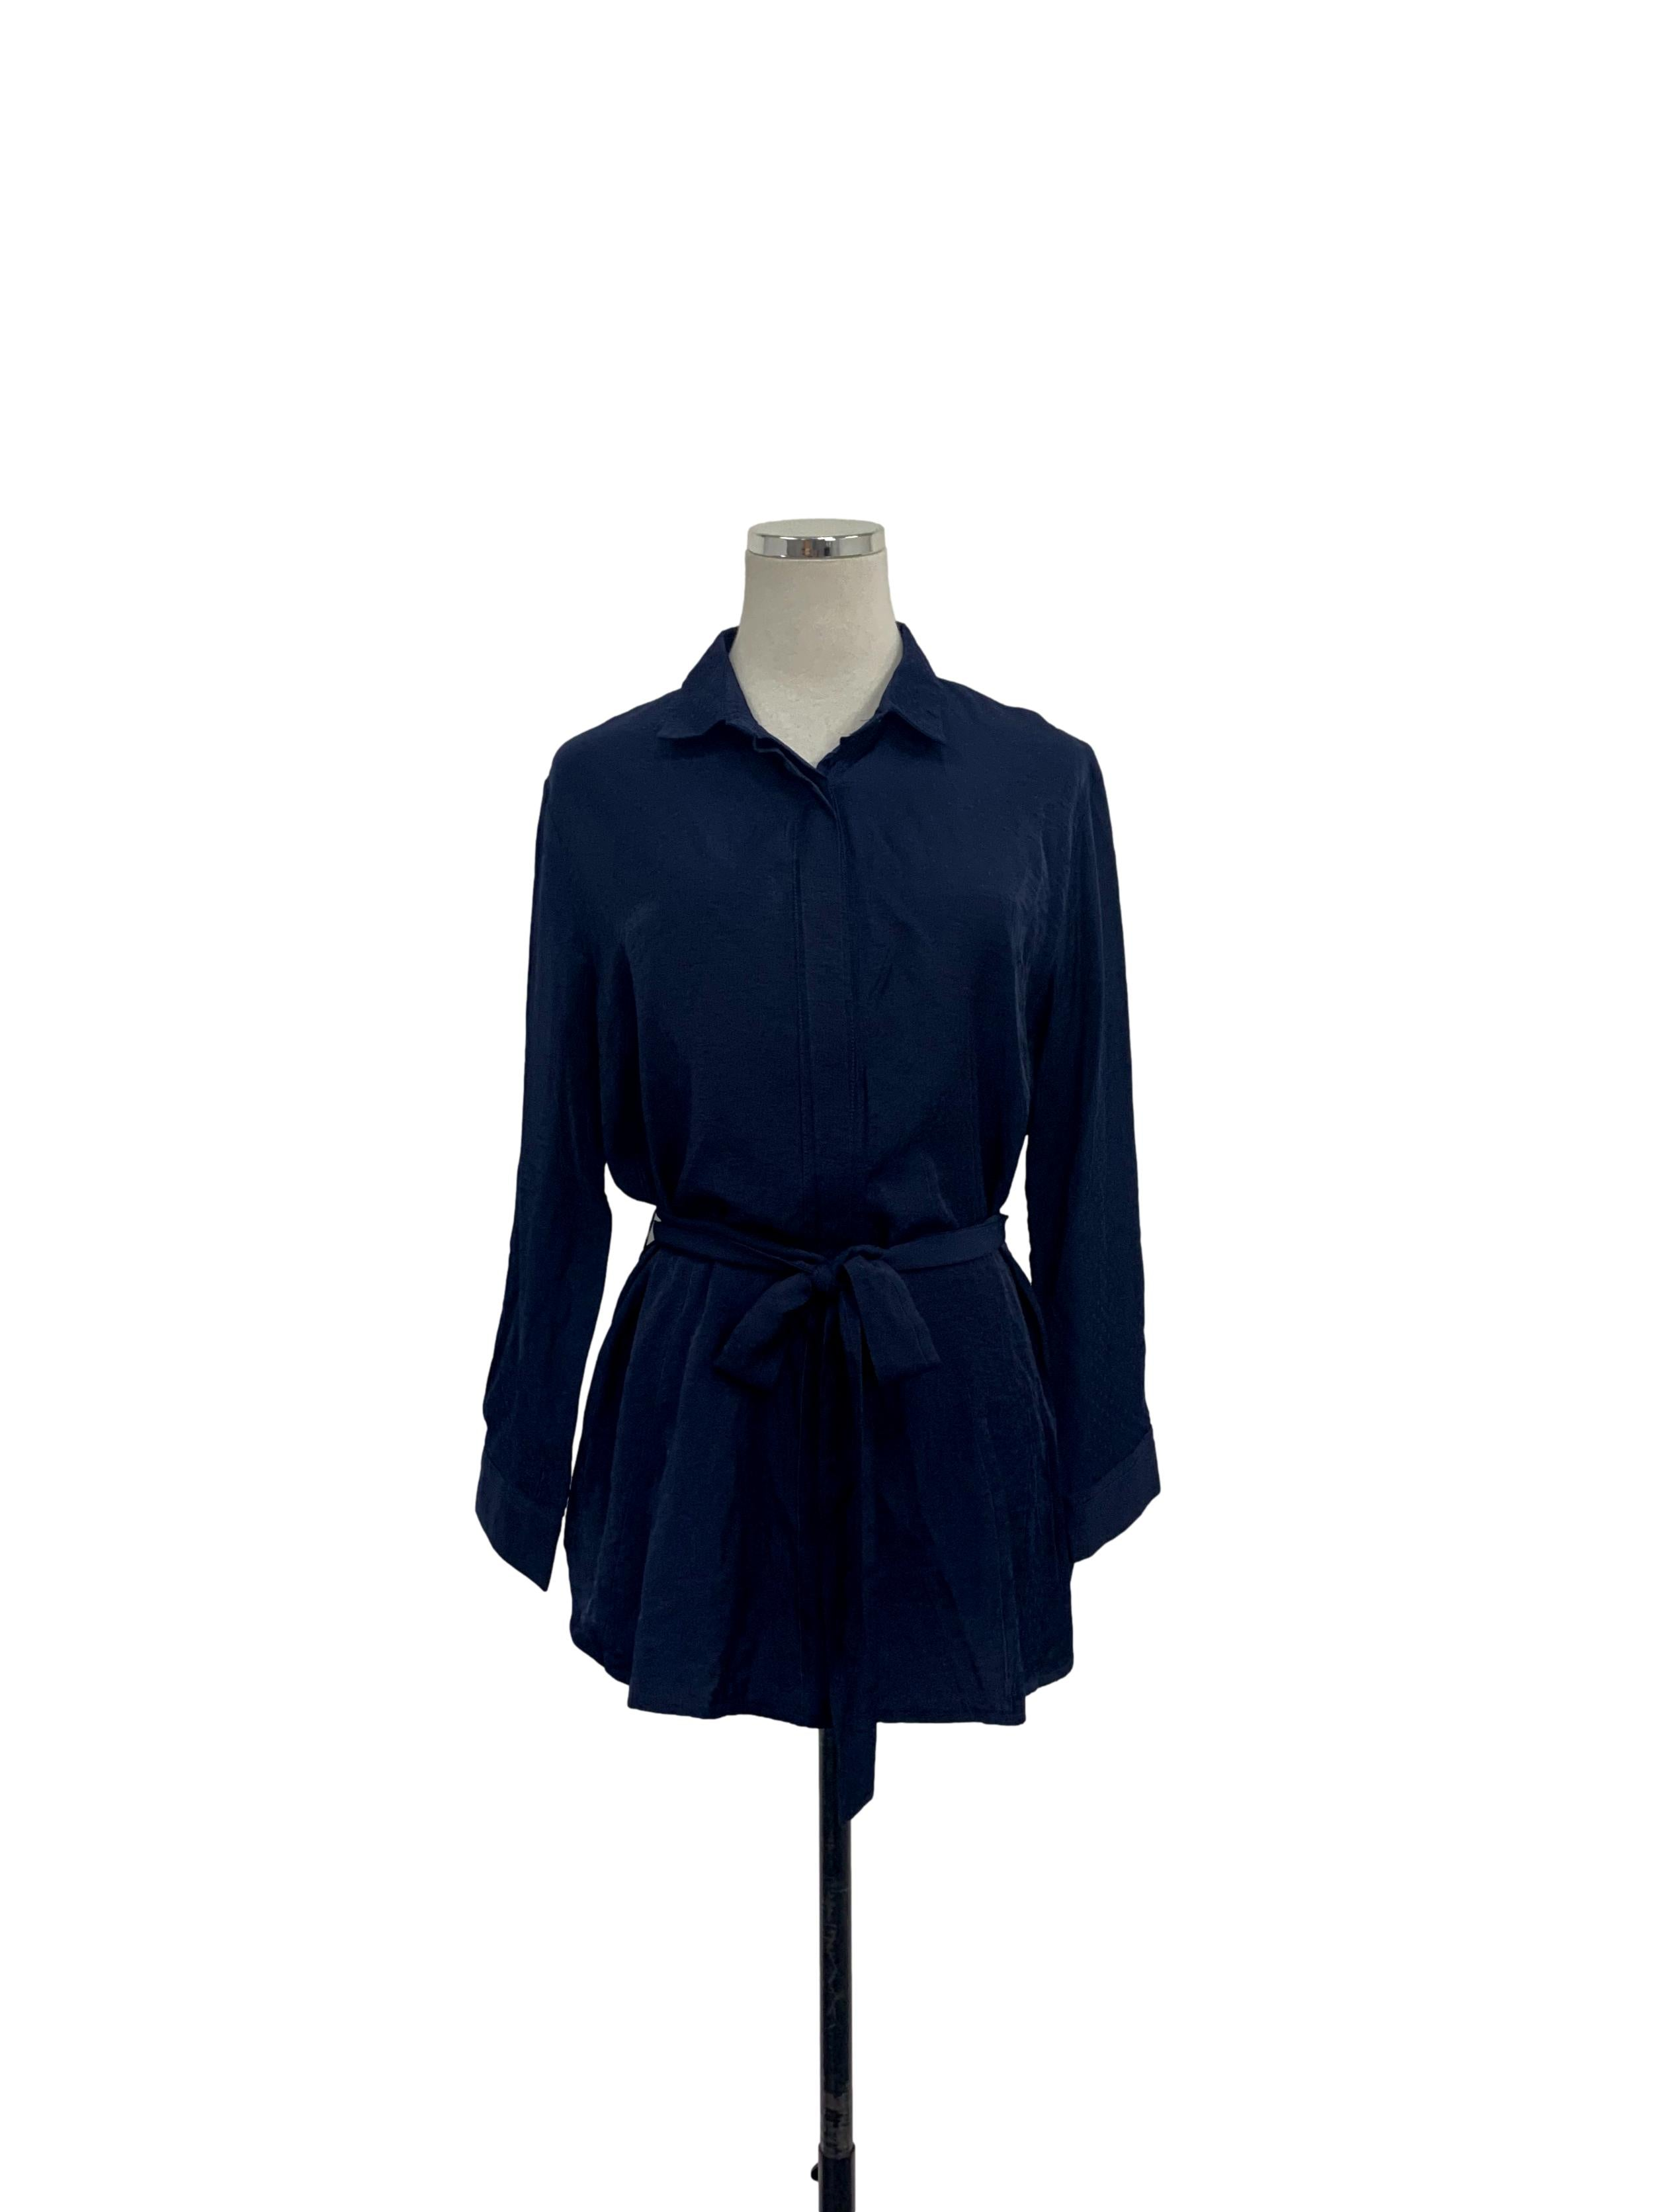 Navy Blue Long Sleeve Blouse with Concealed Buttons